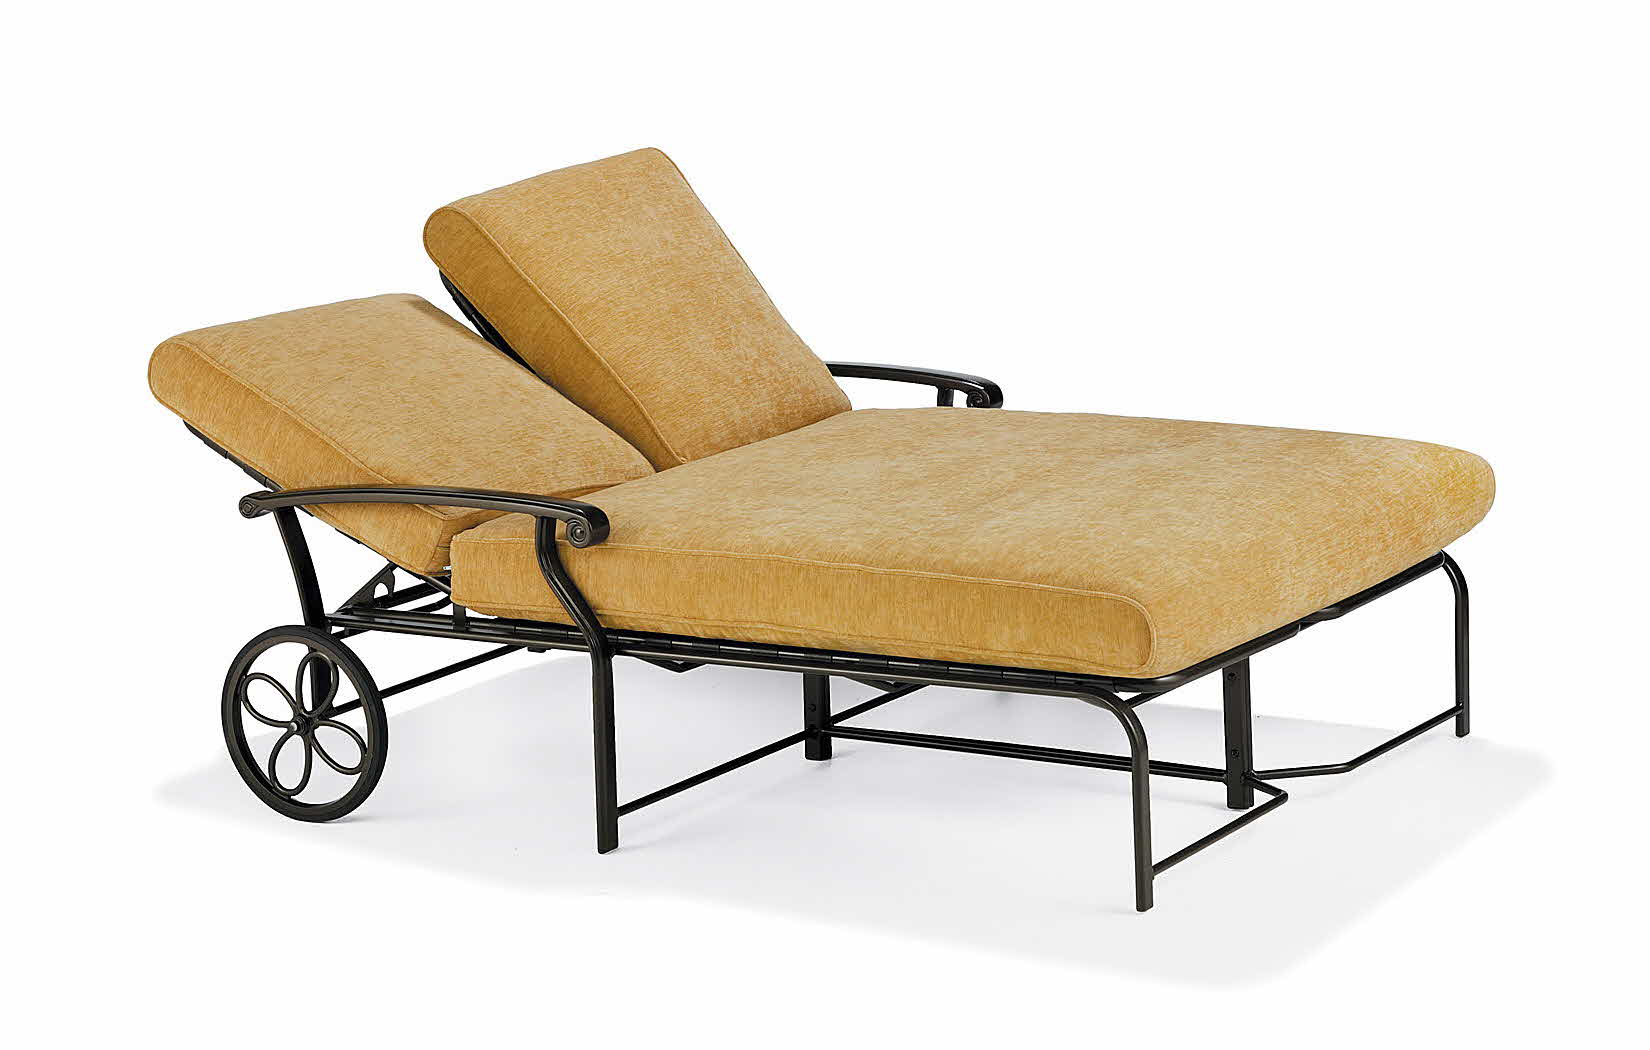 M26069  Madero Cushion Collection Double Chaise Lounge Chairs